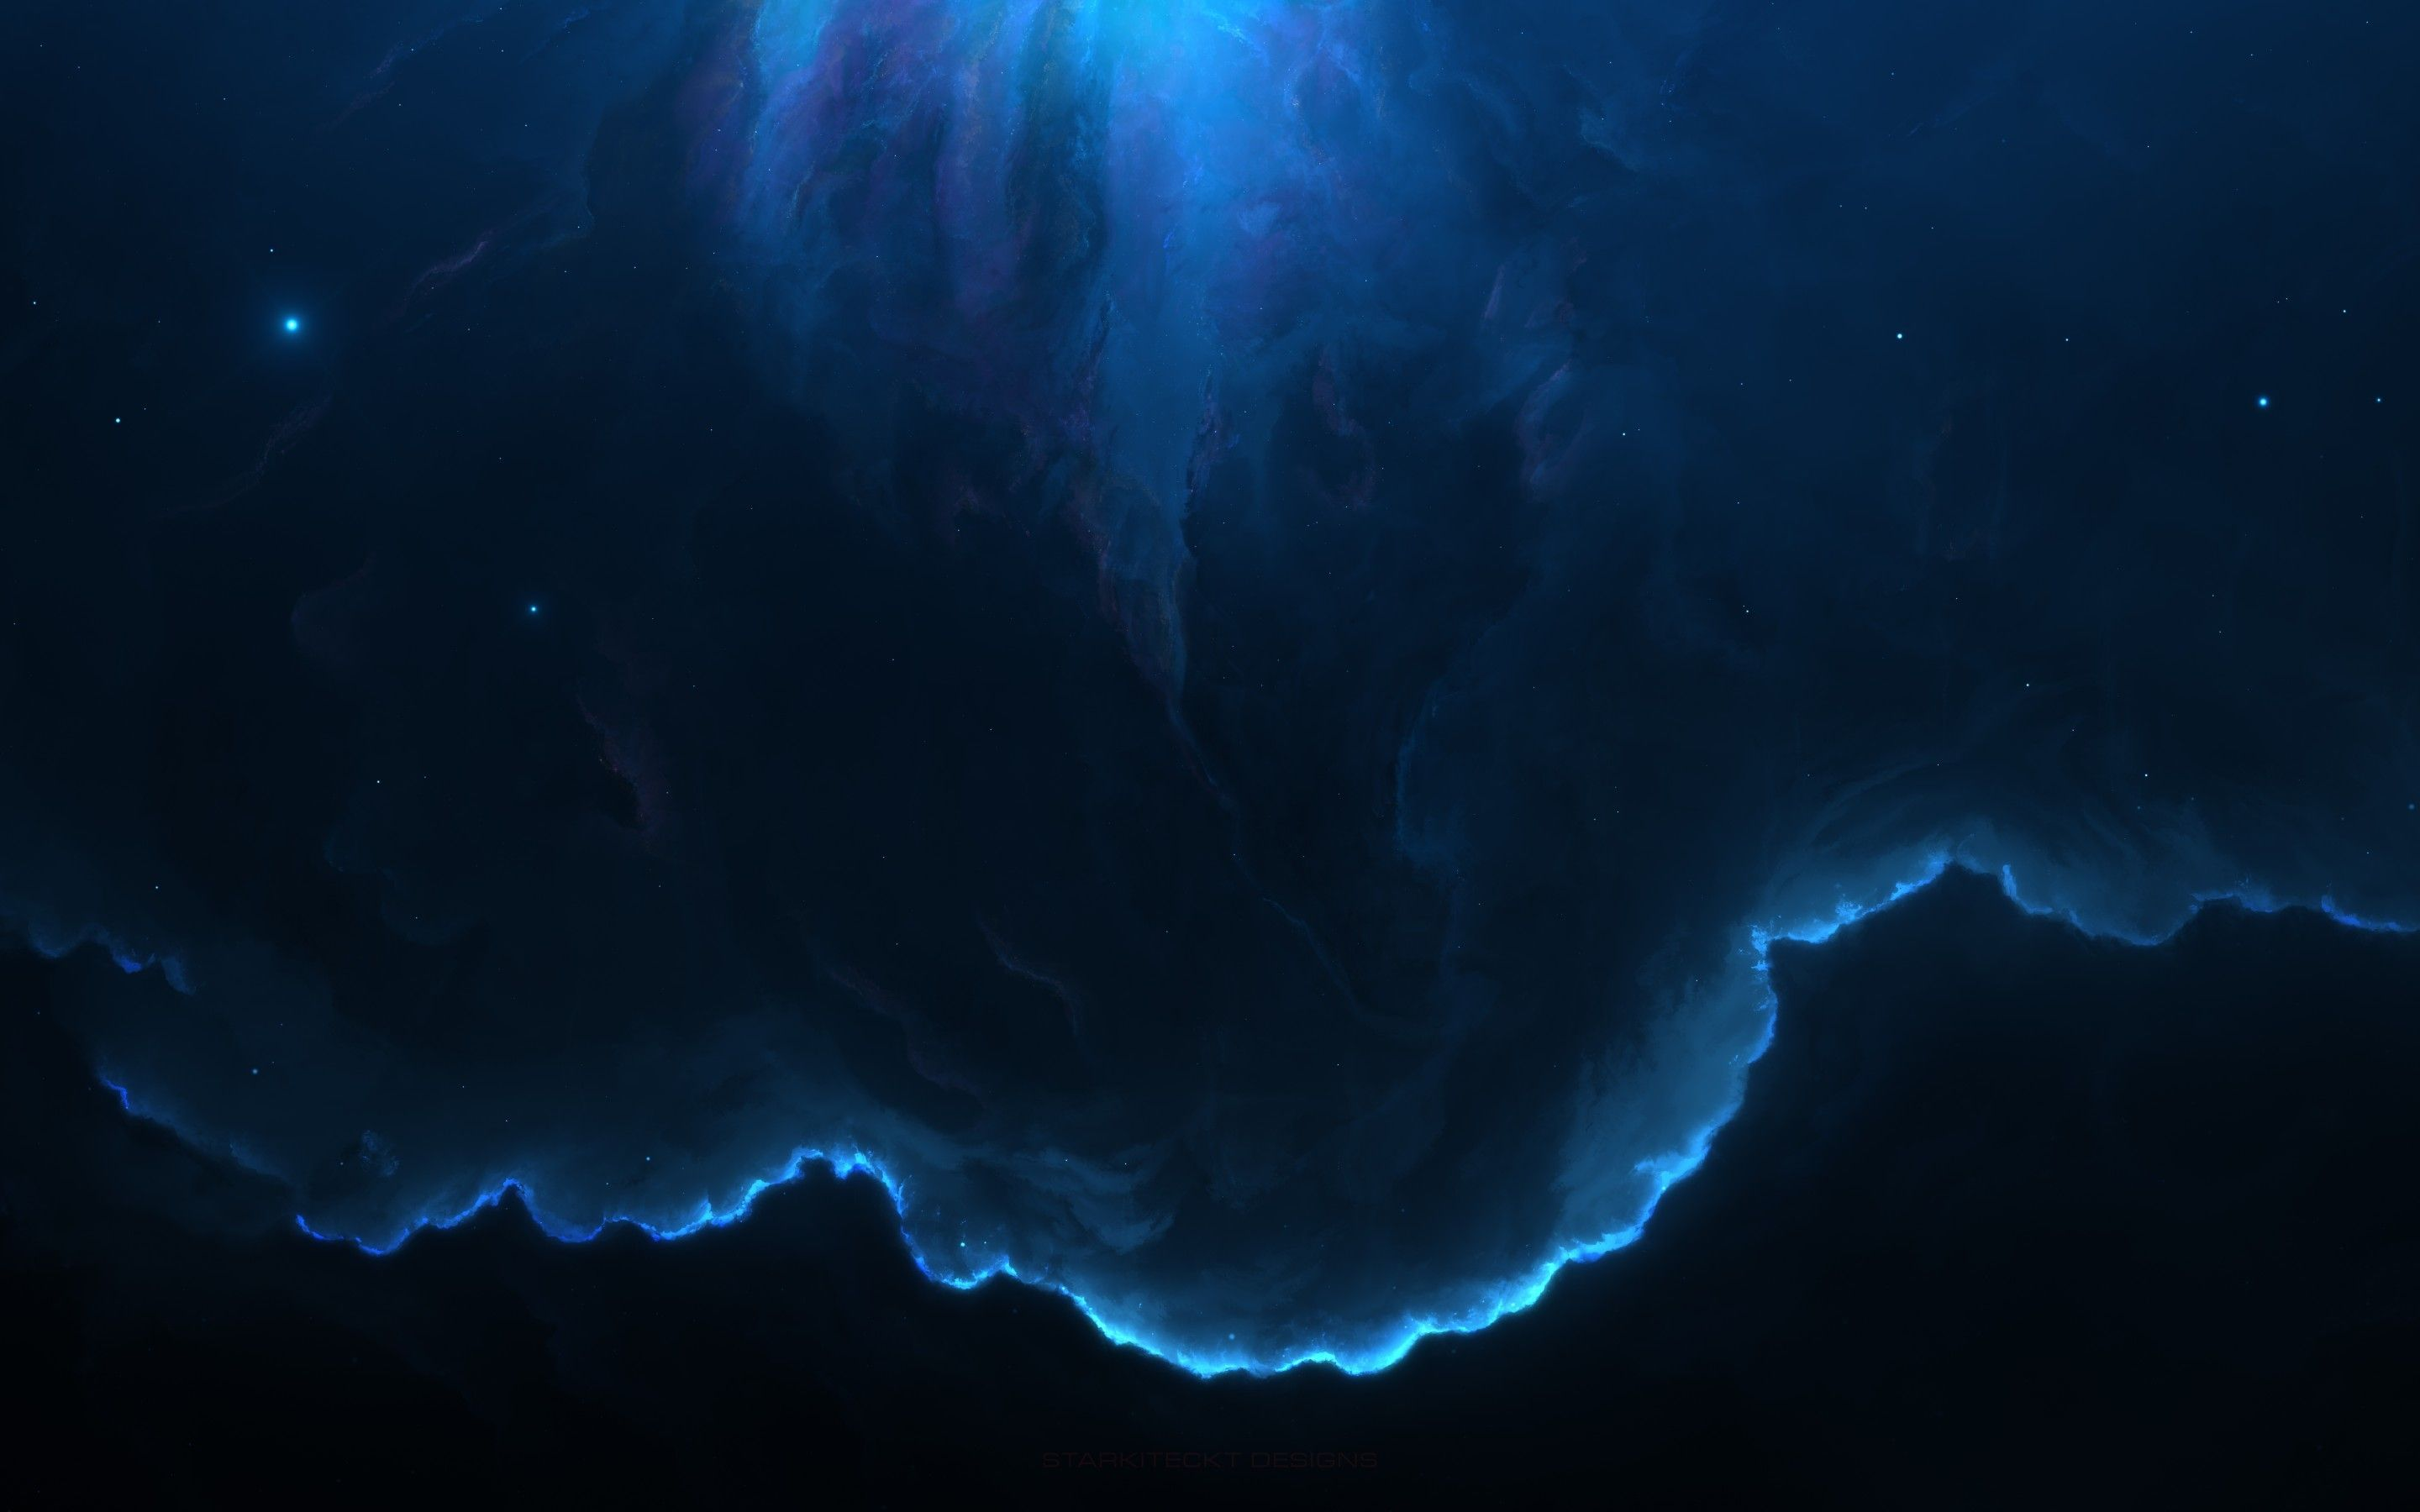 Res 2880x1800 Space Nebula Wallpaper Nebula Wallpaper Dark Wallpaper 8k Wallpaper